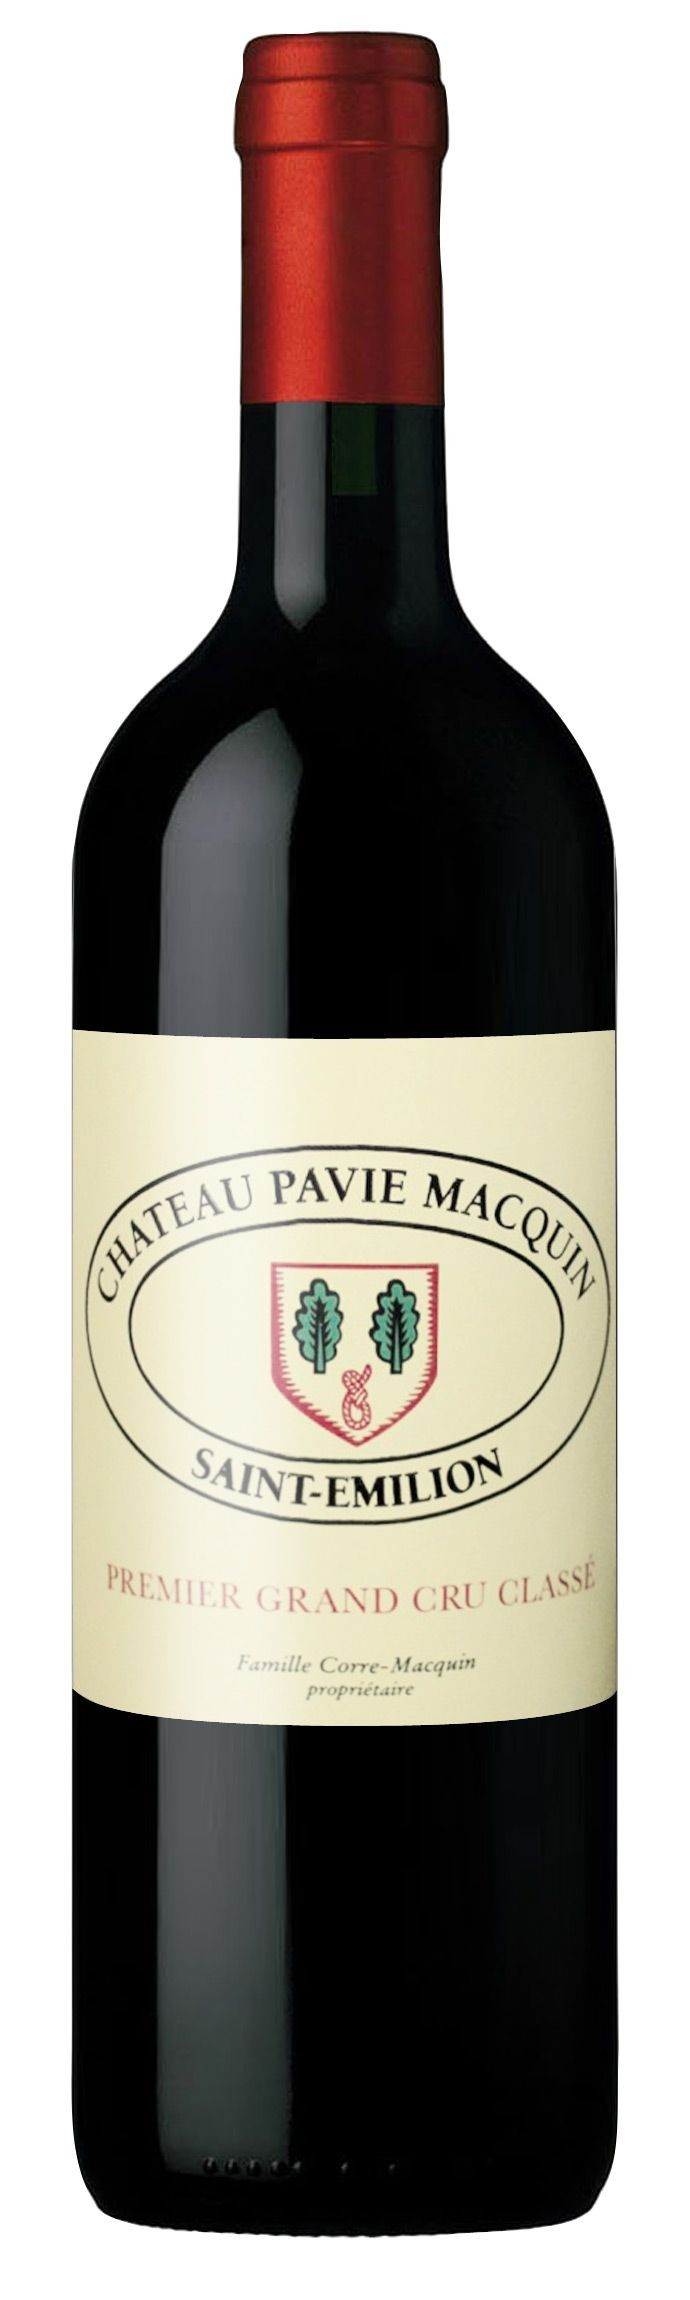 Chateau Pavie Macquin - 1.Grand Cru Classe, 2011